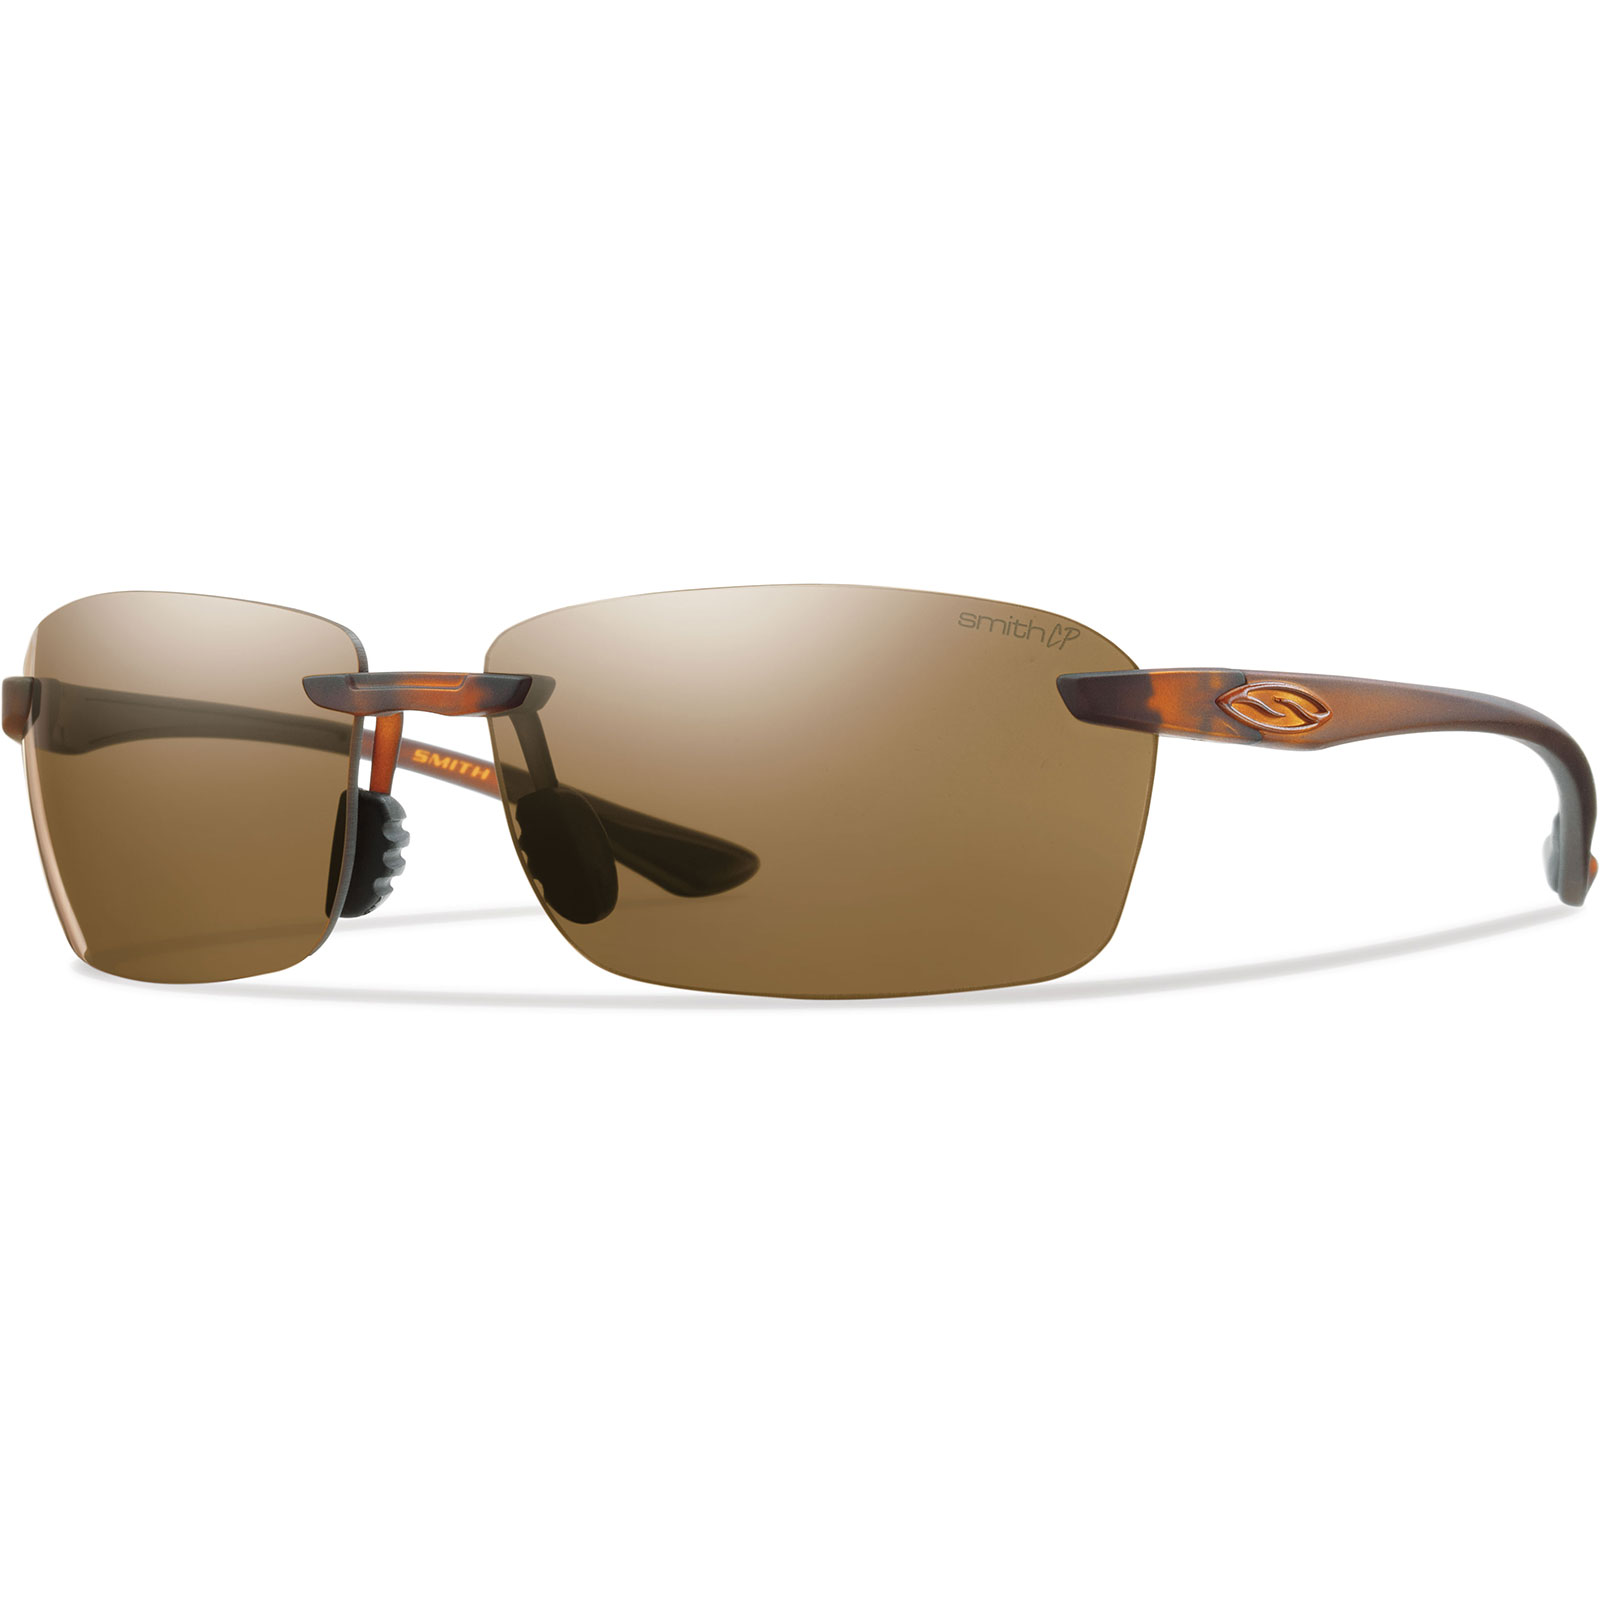 Smith collective polarized sunglasses review www for Smith optics fishing